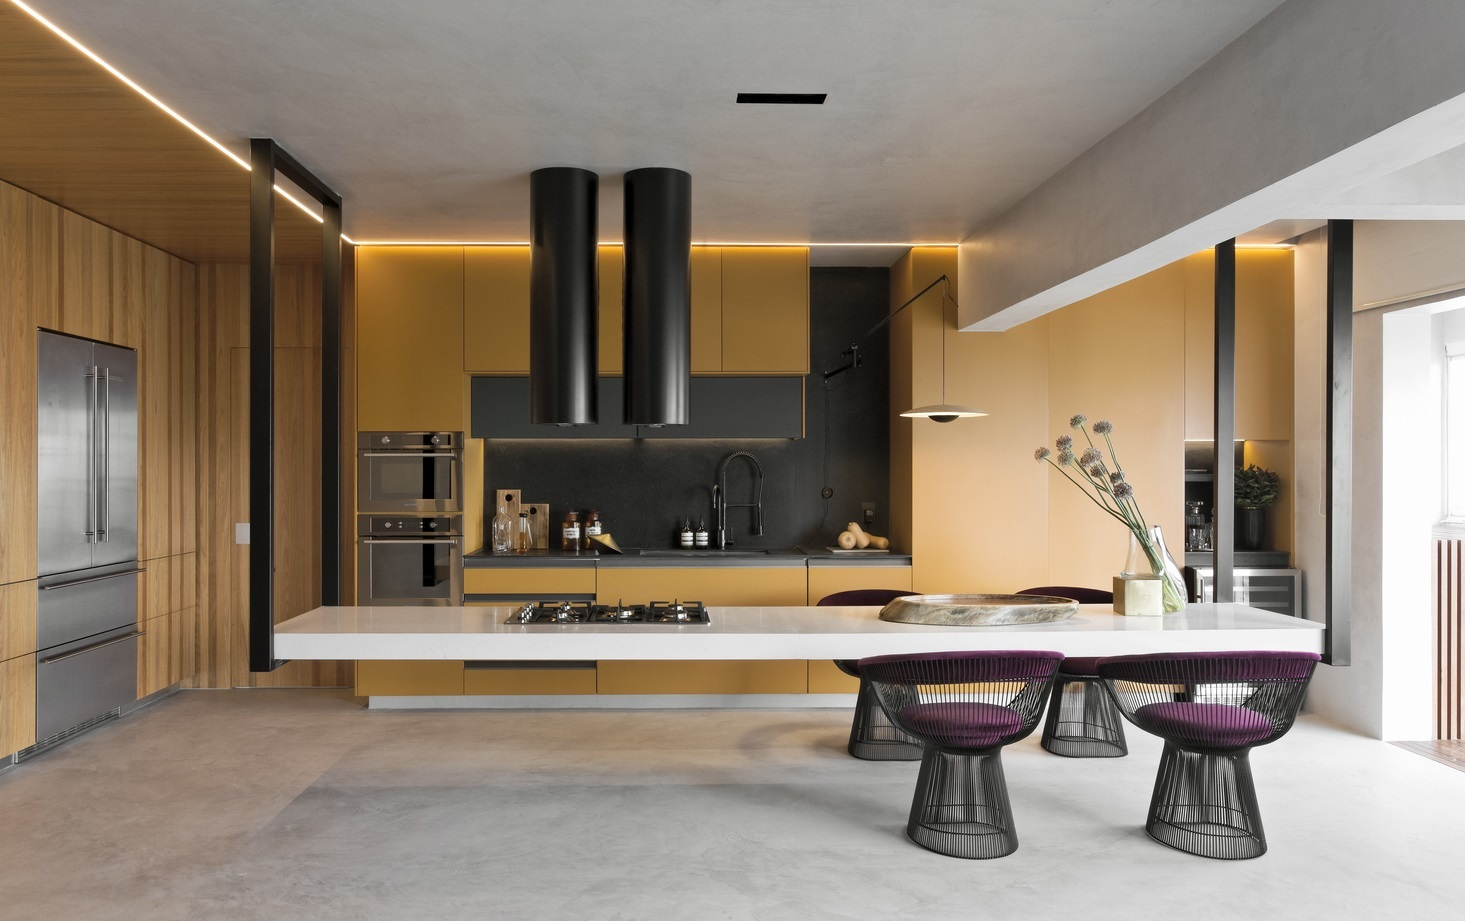 8 Tips For Designing Residential Kitchens Archdaily